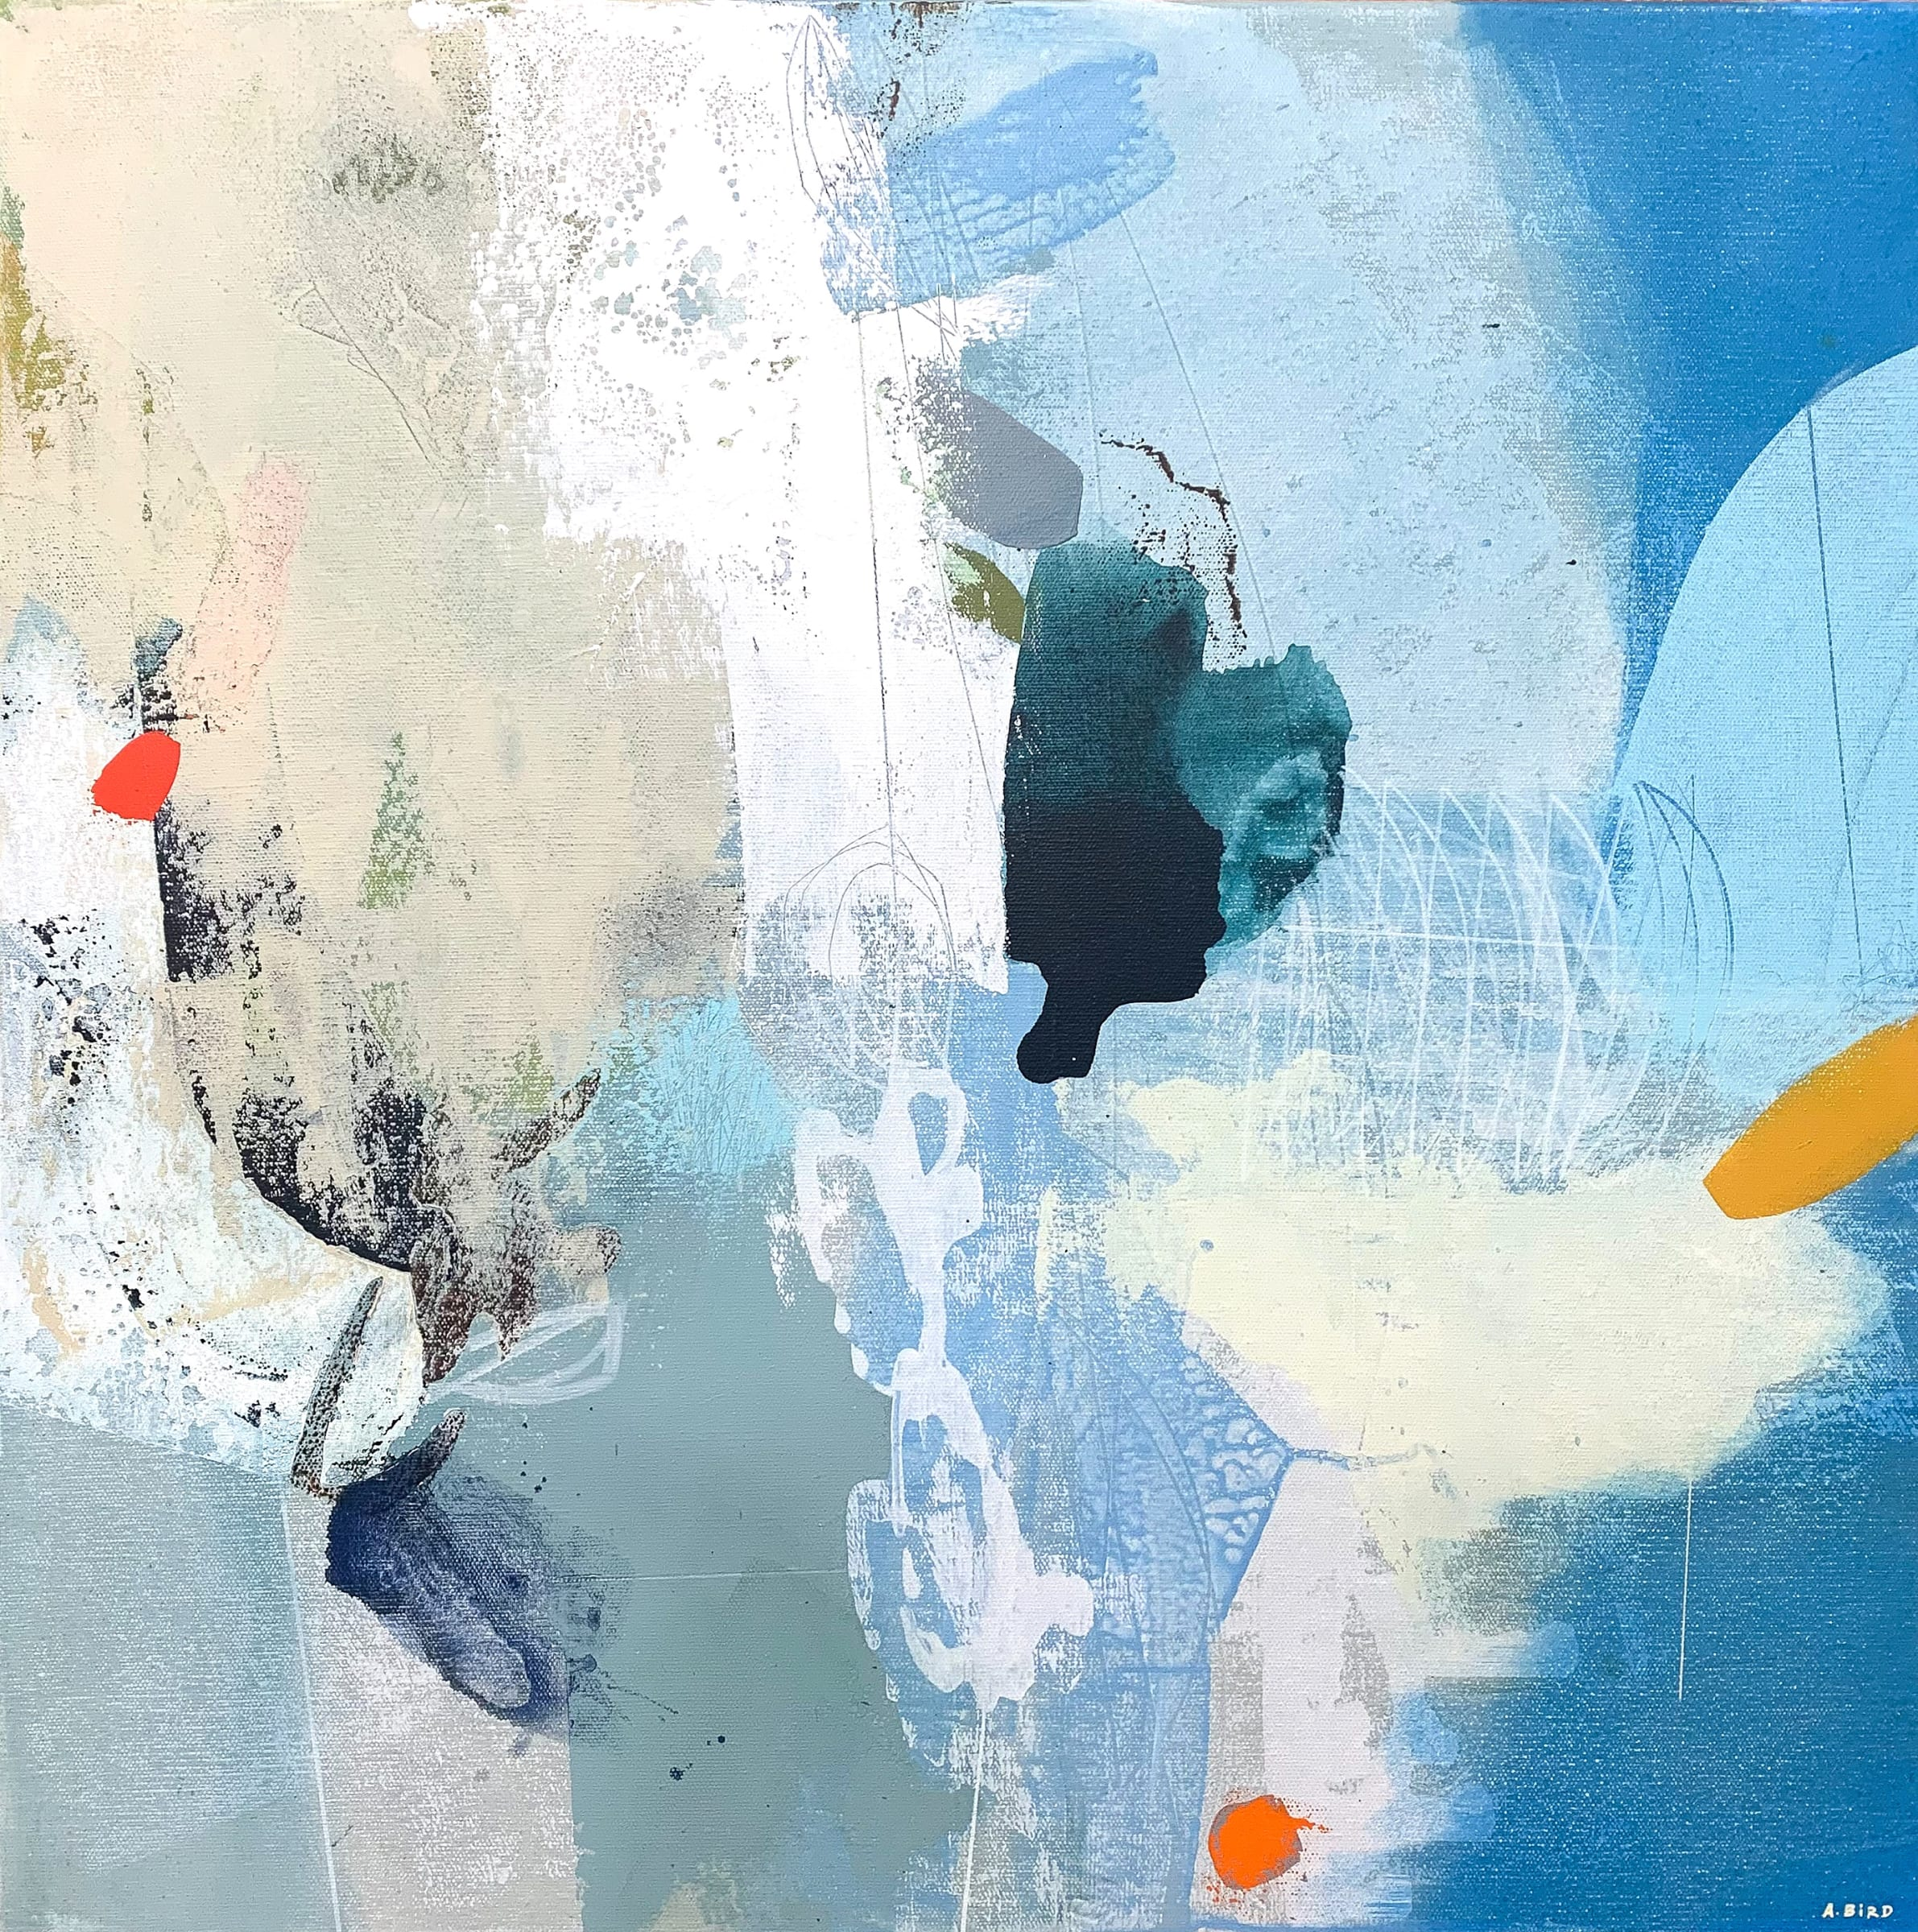 """<span class=""""link fancybox-details-link""""><a href=""""/store/artworks/7977-andrew-bird-can-you-hear-the-thunder-2021/"""">View Detail Page</a></span><div class=""""artist""""><strong>Andrew Bird</strong></div> b. 1969 <div class=""""title""""><em>Can You Hear The Thunder?</em>, 2021</div> <div class=""""medium"""">acrylic on canvas</div> <div class=""""dimensions"""">61 x 61 cm </div><div class=""""price"""">£1,850.00</div><div class=""""copyright_line"""">Own Art: £185 x 10 Months, 0% APR </div>"""